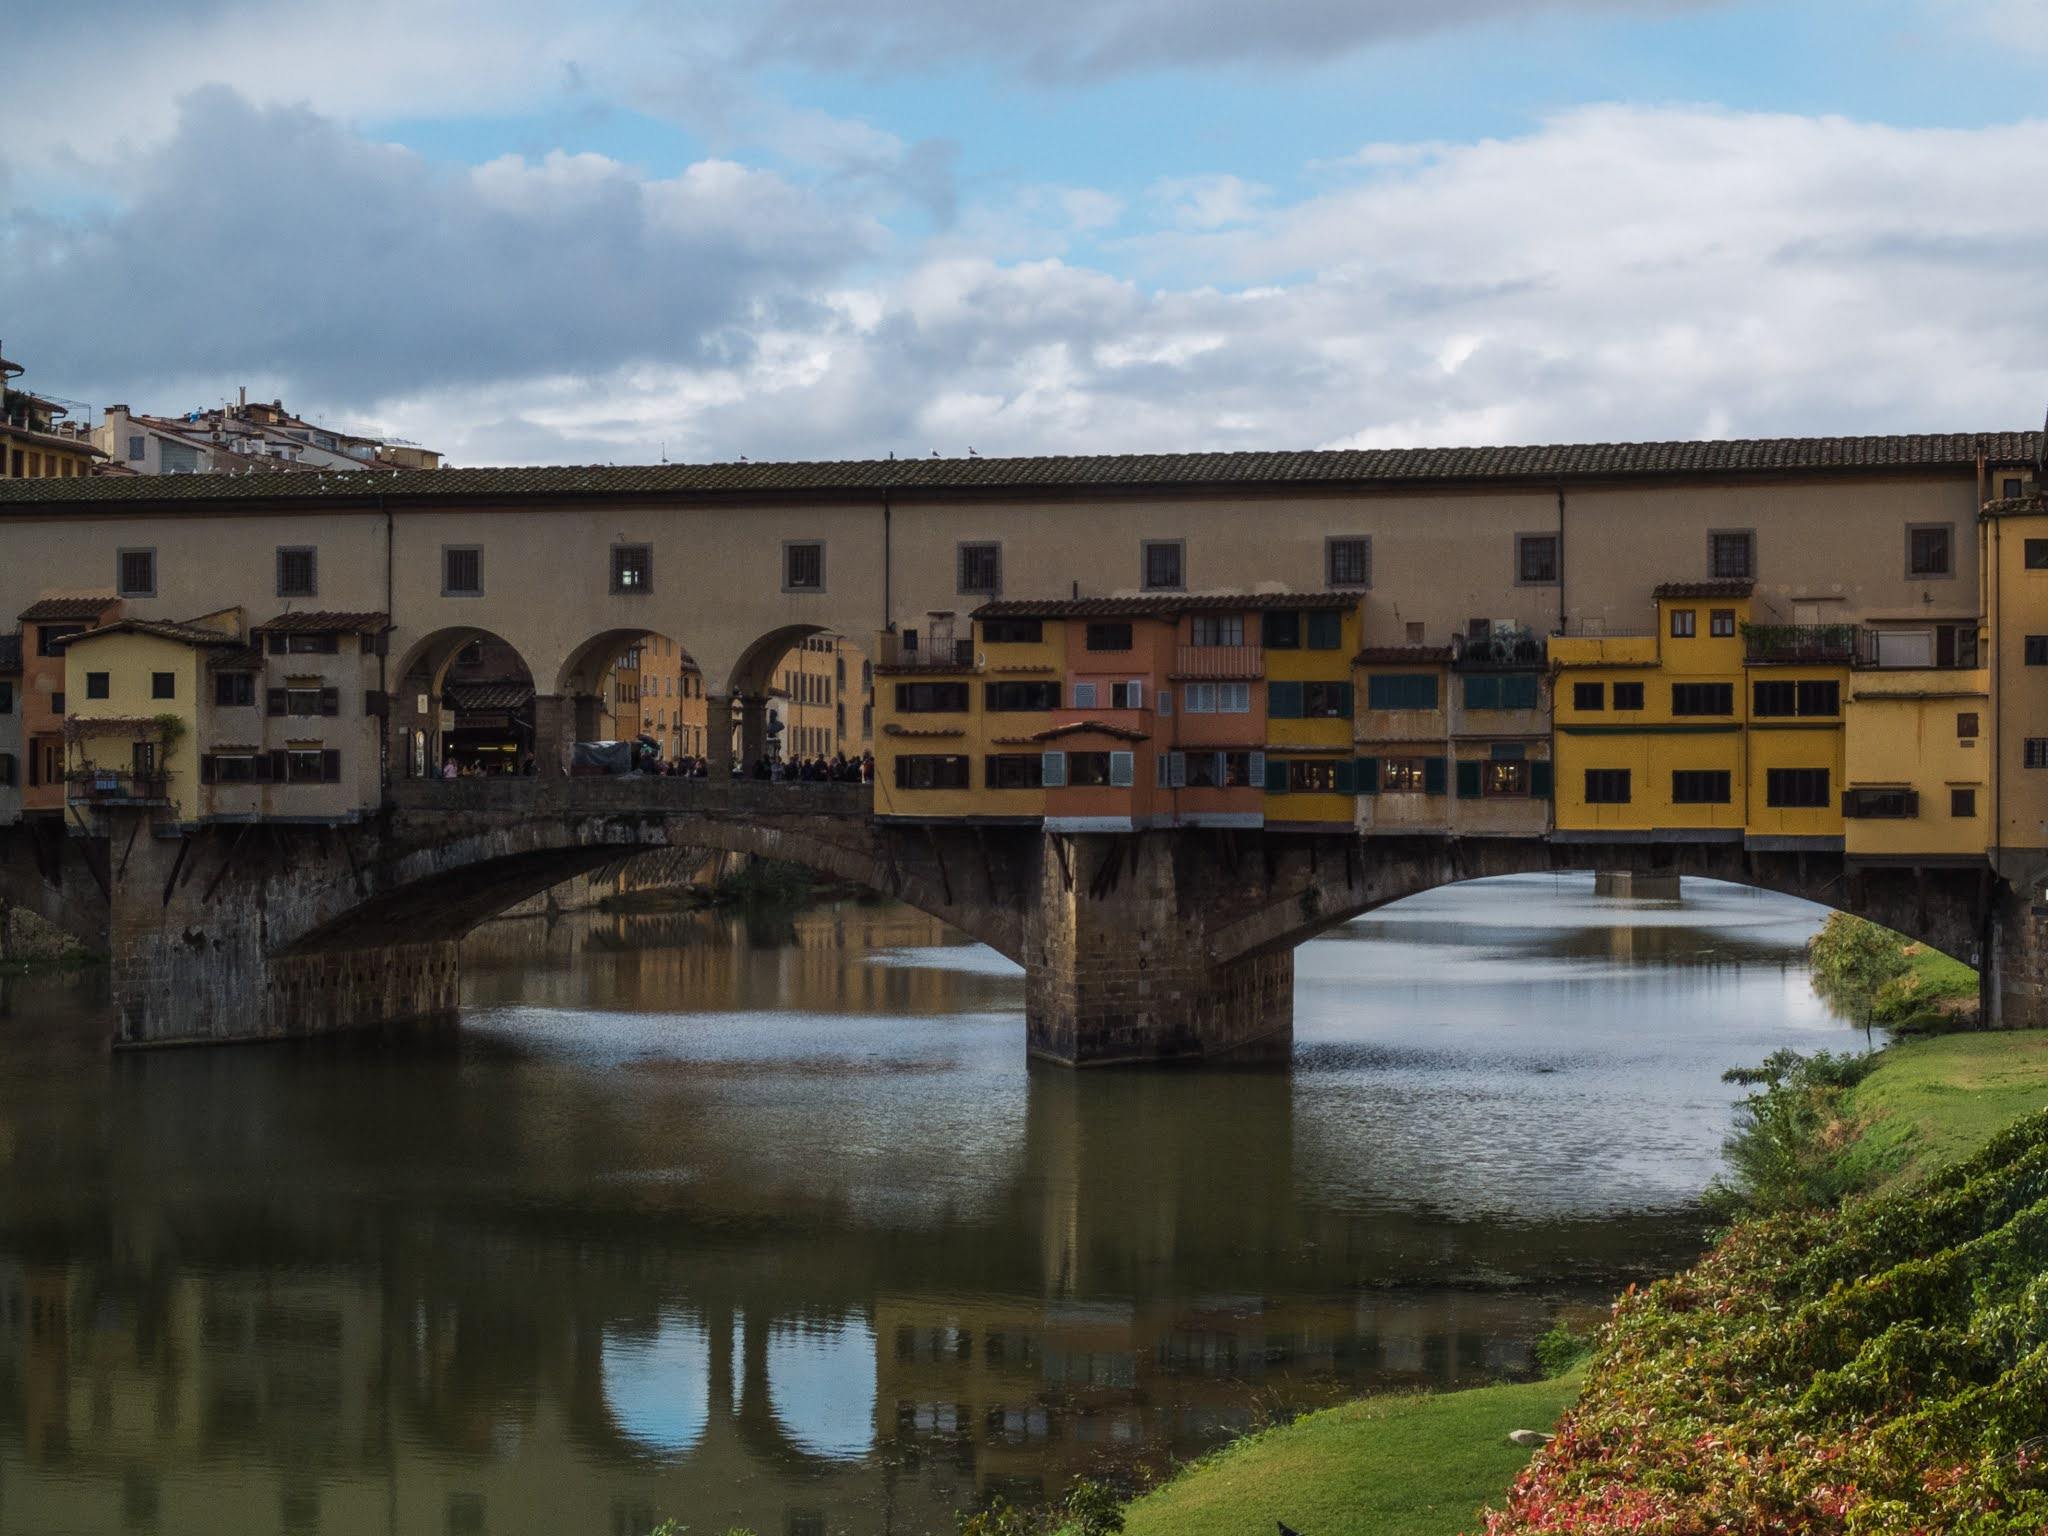 Ponte Vecchio reflecting in the river Arno in Florence.